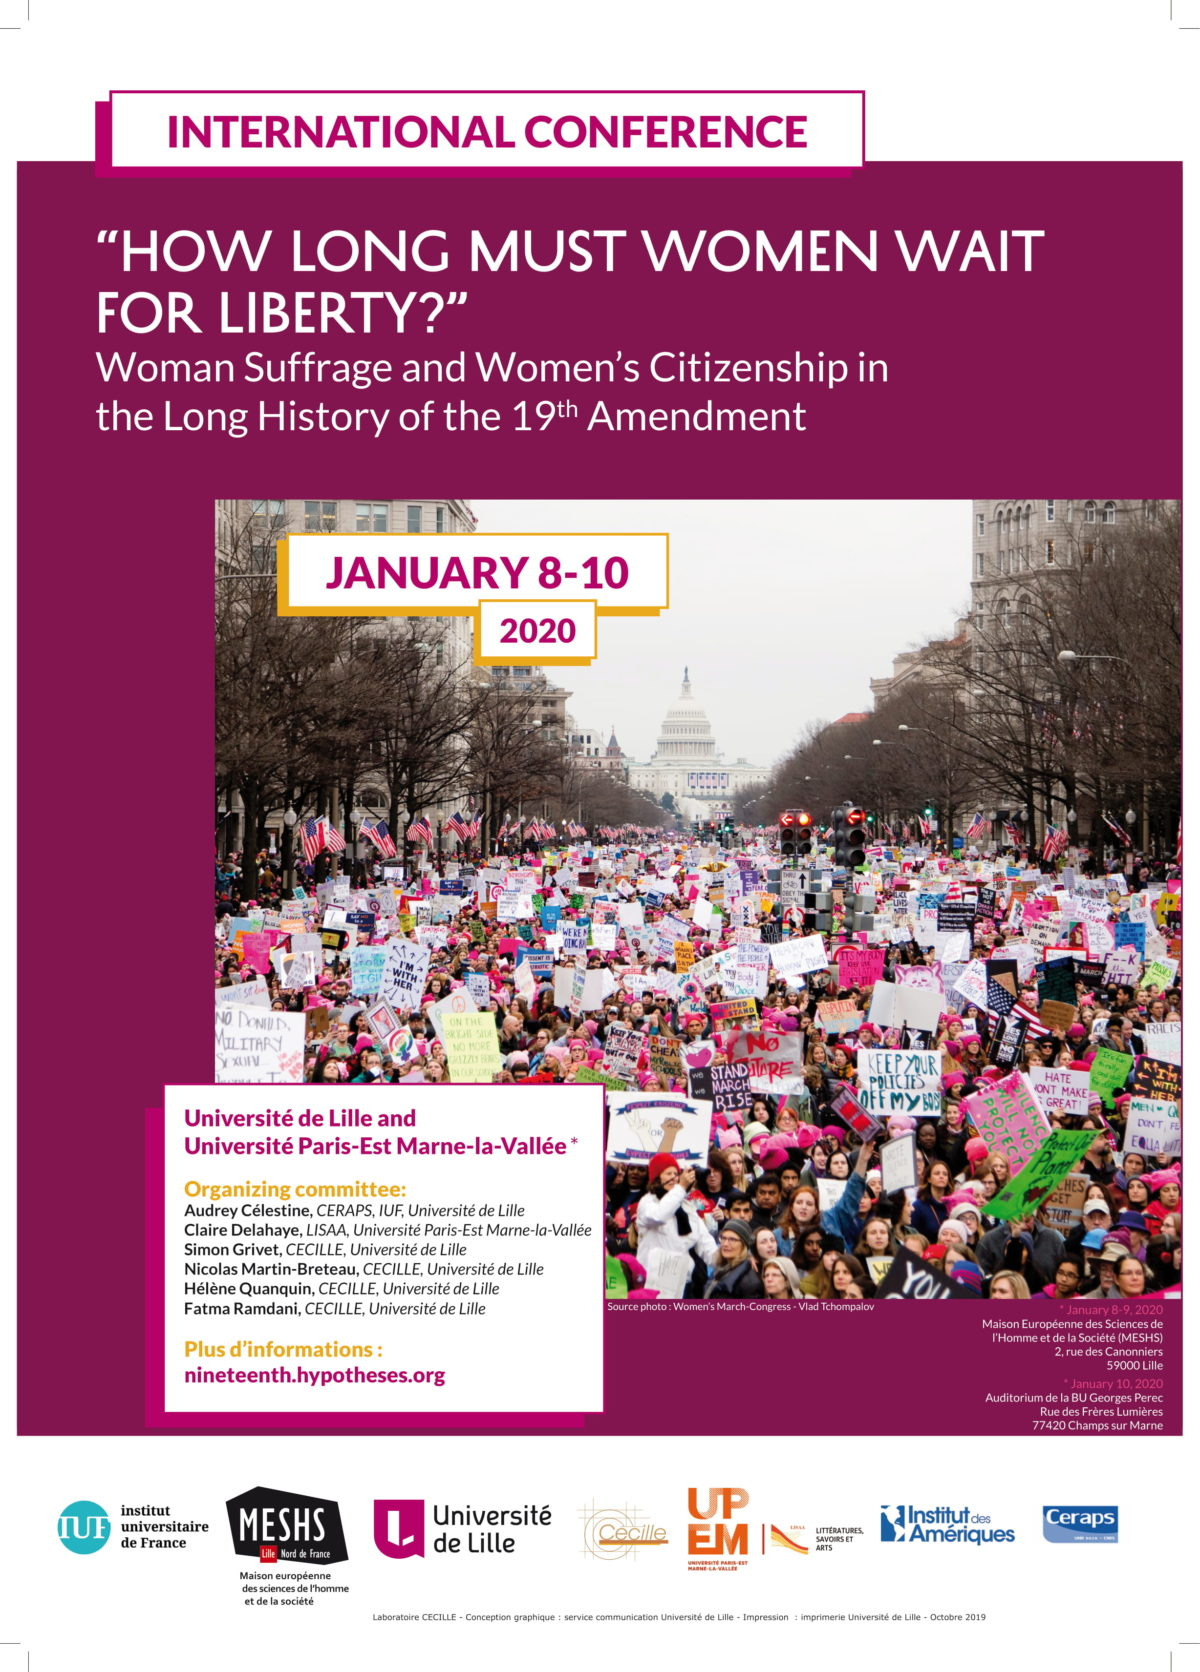 How long must women wait for liberty?